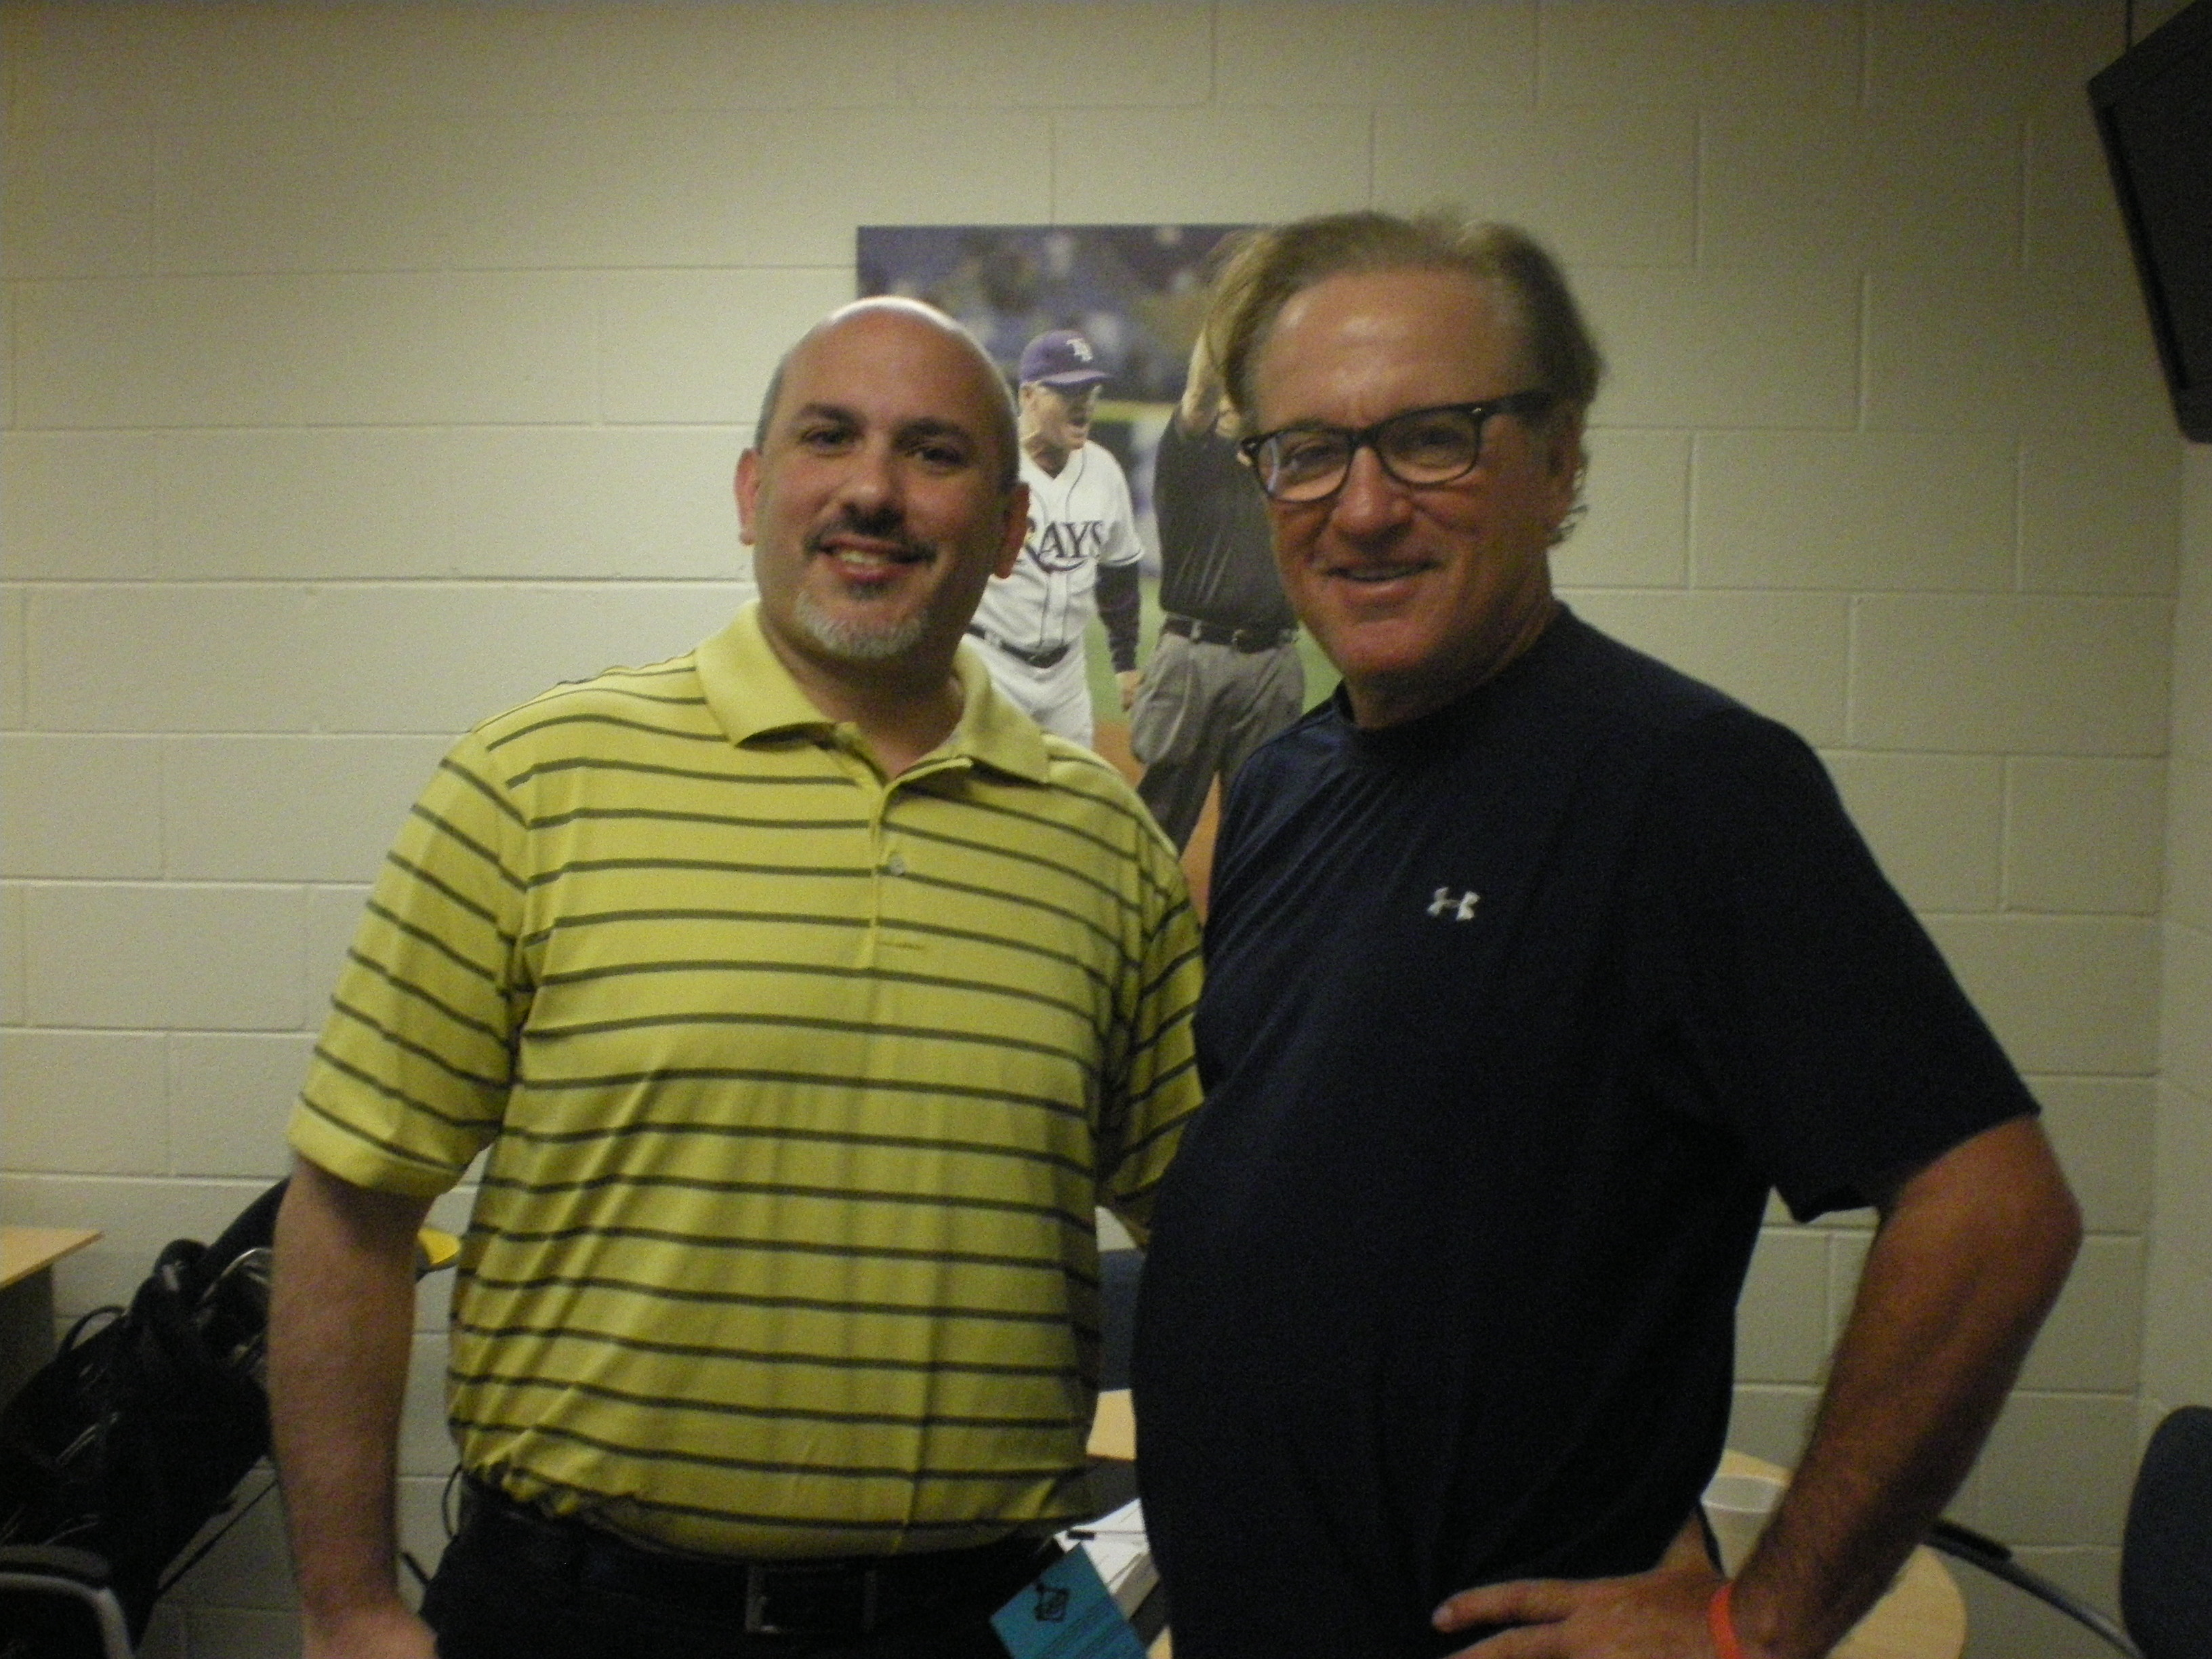 Author Howard Fero with Joe Maddon